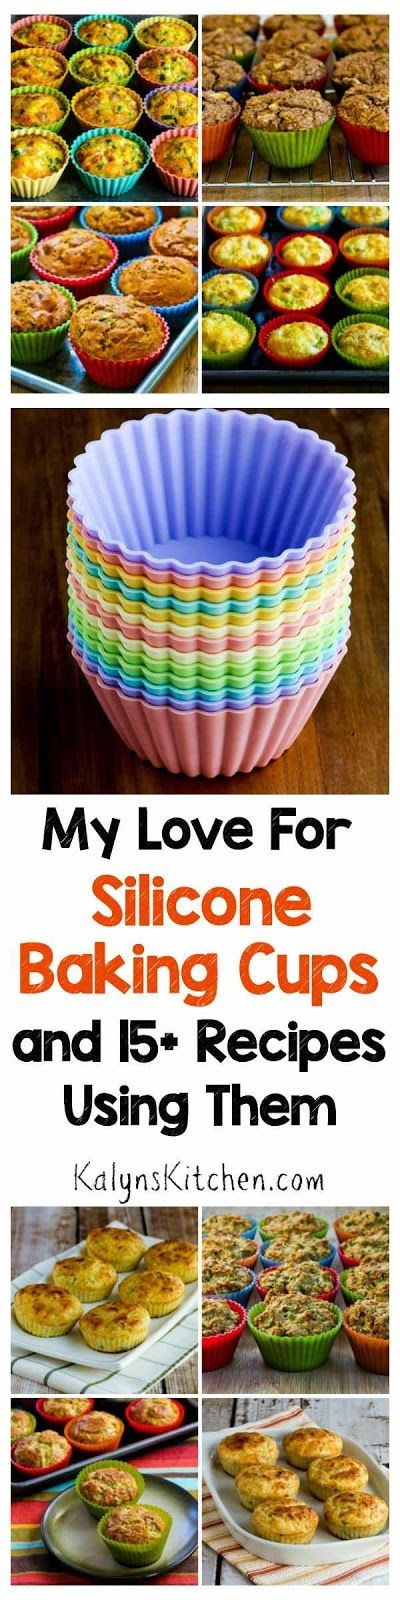 My Love for Silicone Baking Cups and 15+ Recipes Using Silicone Baking Cups [found on KalynsKitchen.com]